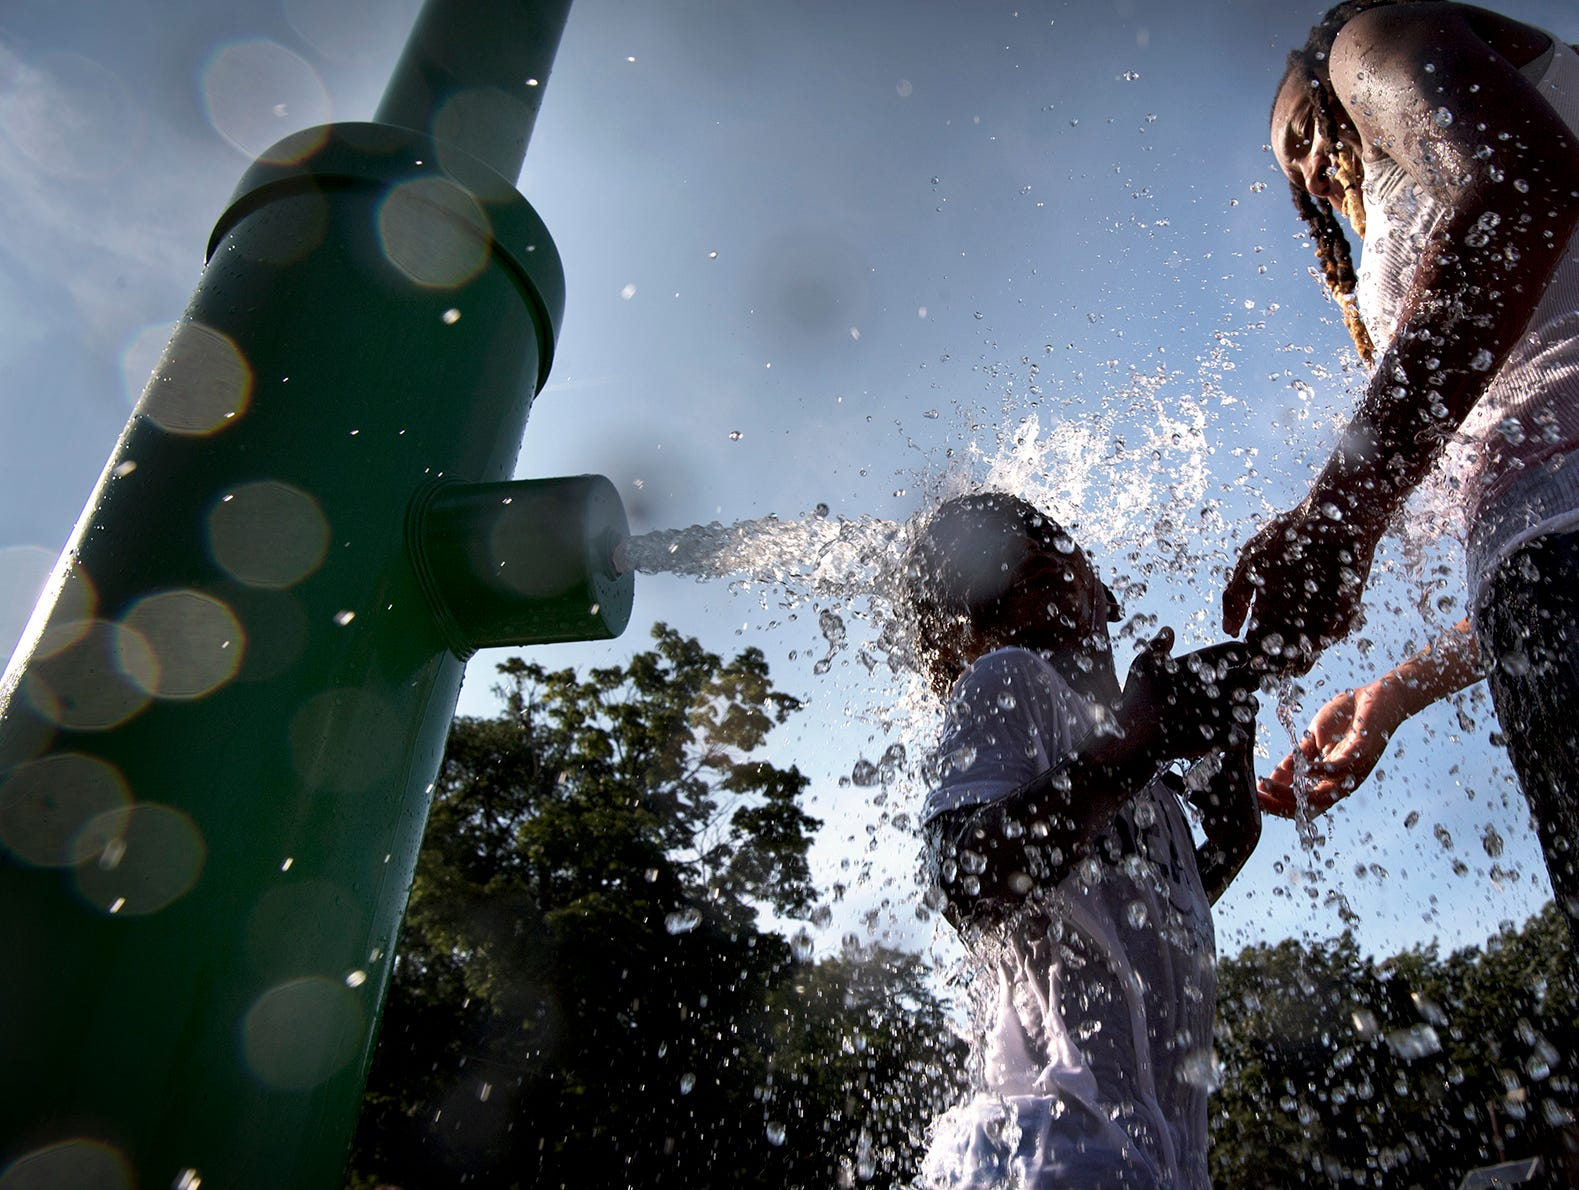 Nayah Wilson looks on as her son LJ, 4, plays in a spray of water at Polifly Road Park in Hackensack on Tuesday, August 28, 2018.